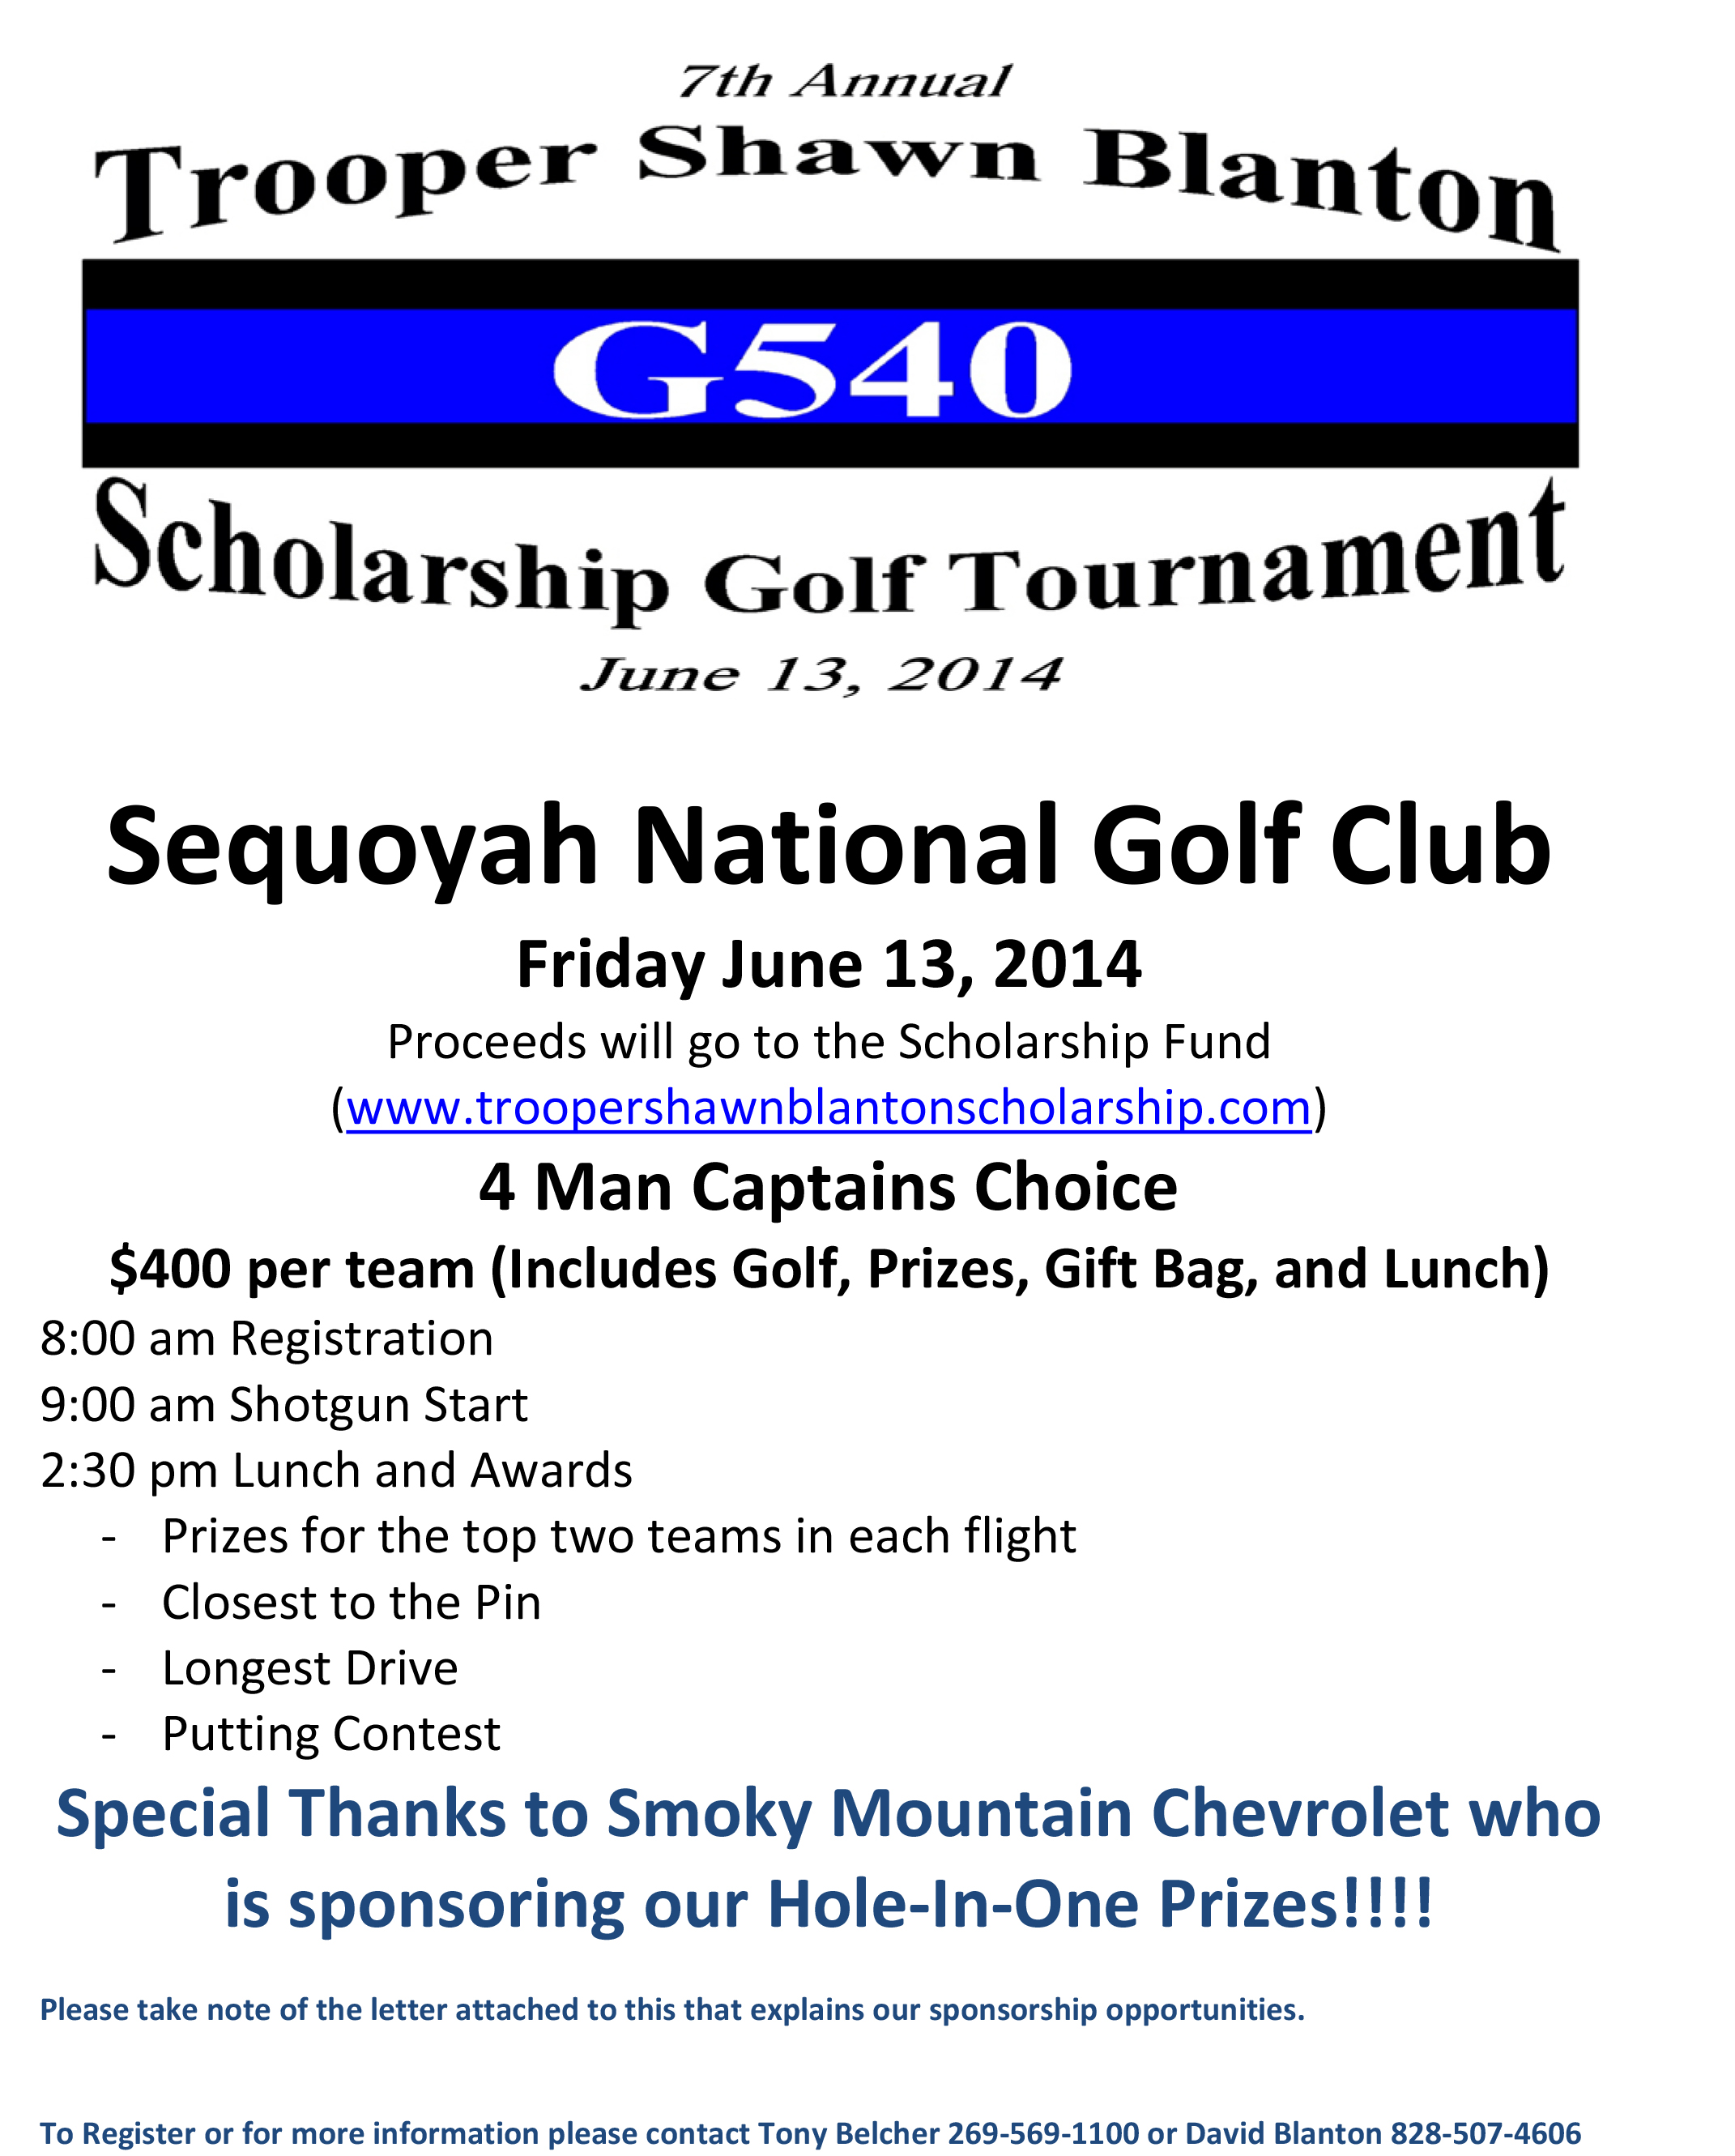 2014_Golf_Tournament__Flyer_and_Early_Sponsorships_letter1-2